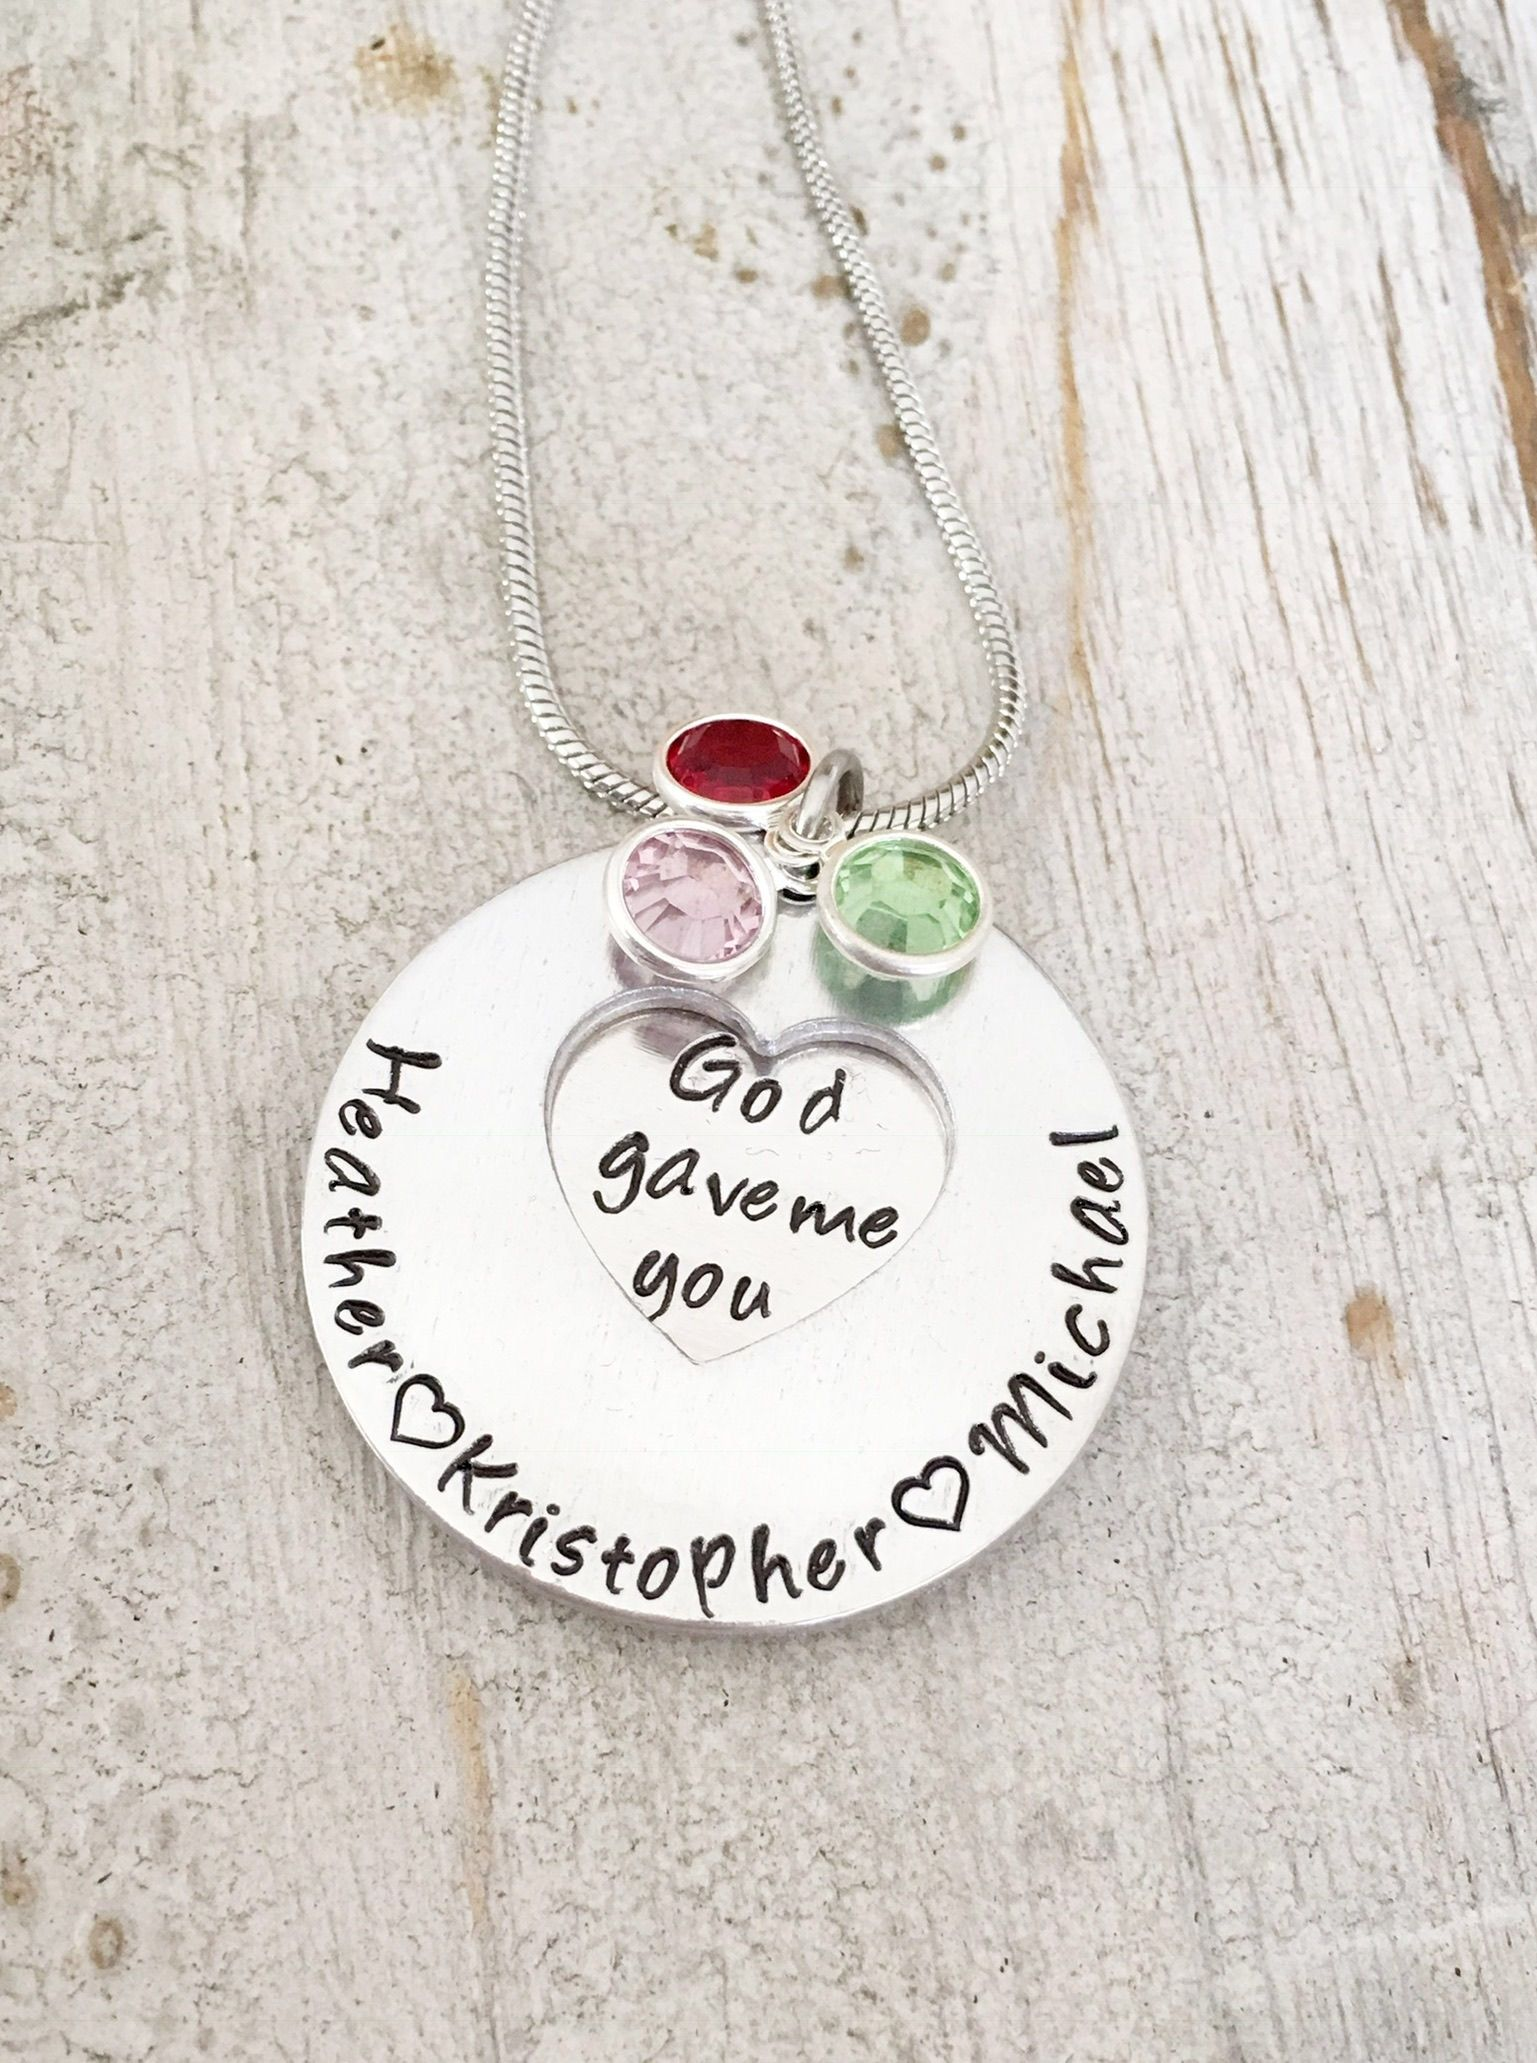 mothers heellilies necklace nana handstamped birthstone gift pin etsy personalized name kids on by christmas gifts grandkid grandma for